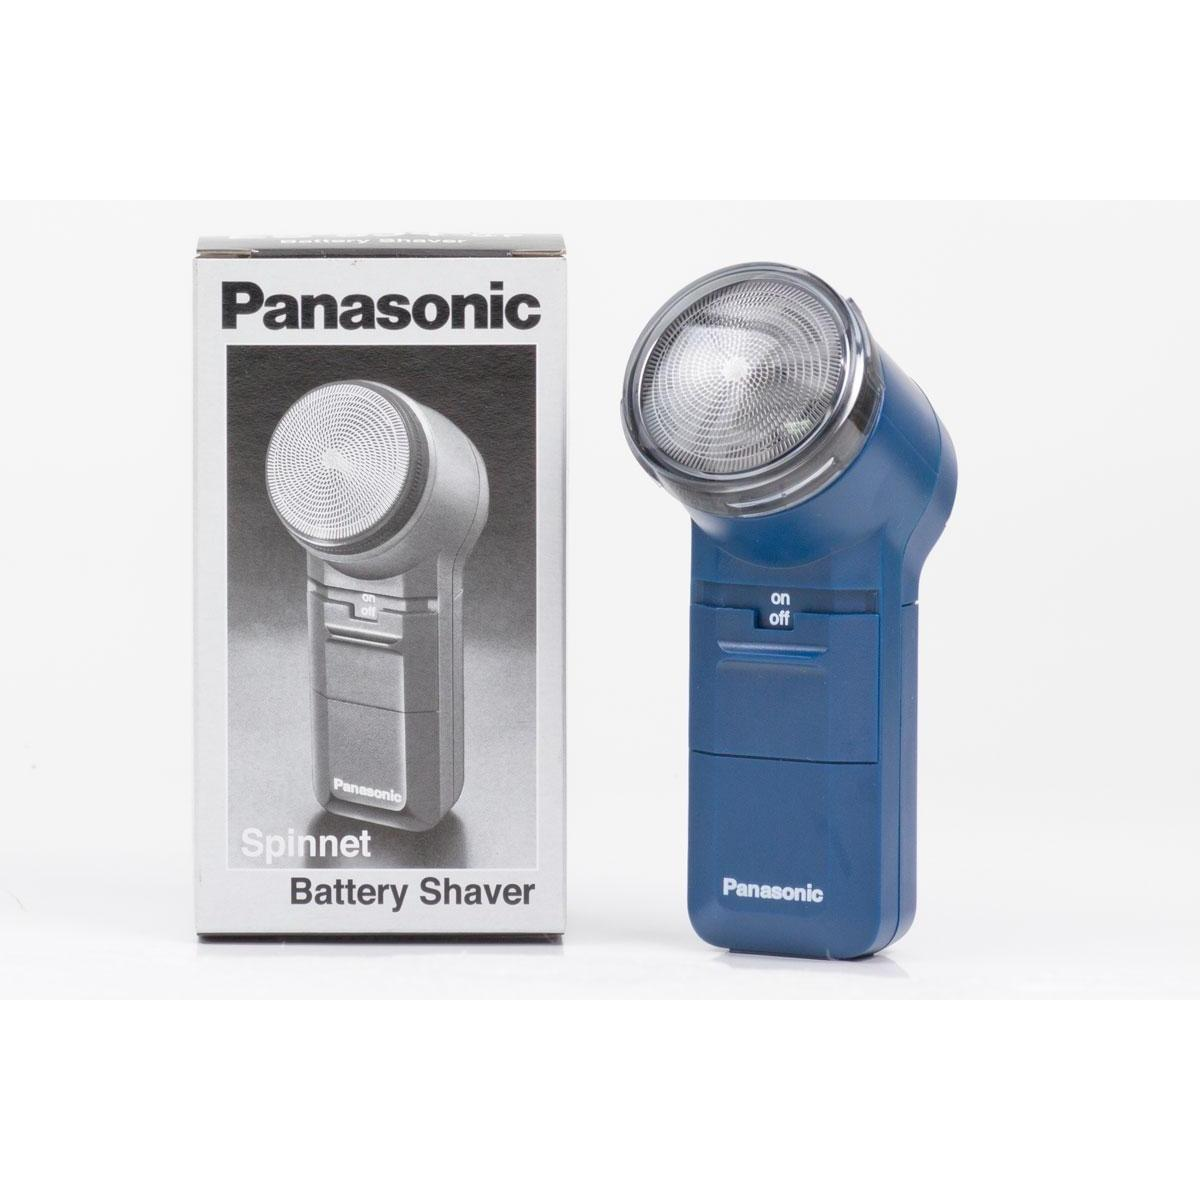 Buy Panasonic Shavers Hair Remover Lazada Es Rw30 Rechargeable Electric Shaver With Flexible Pivoting Head Spinnet Battery Es534